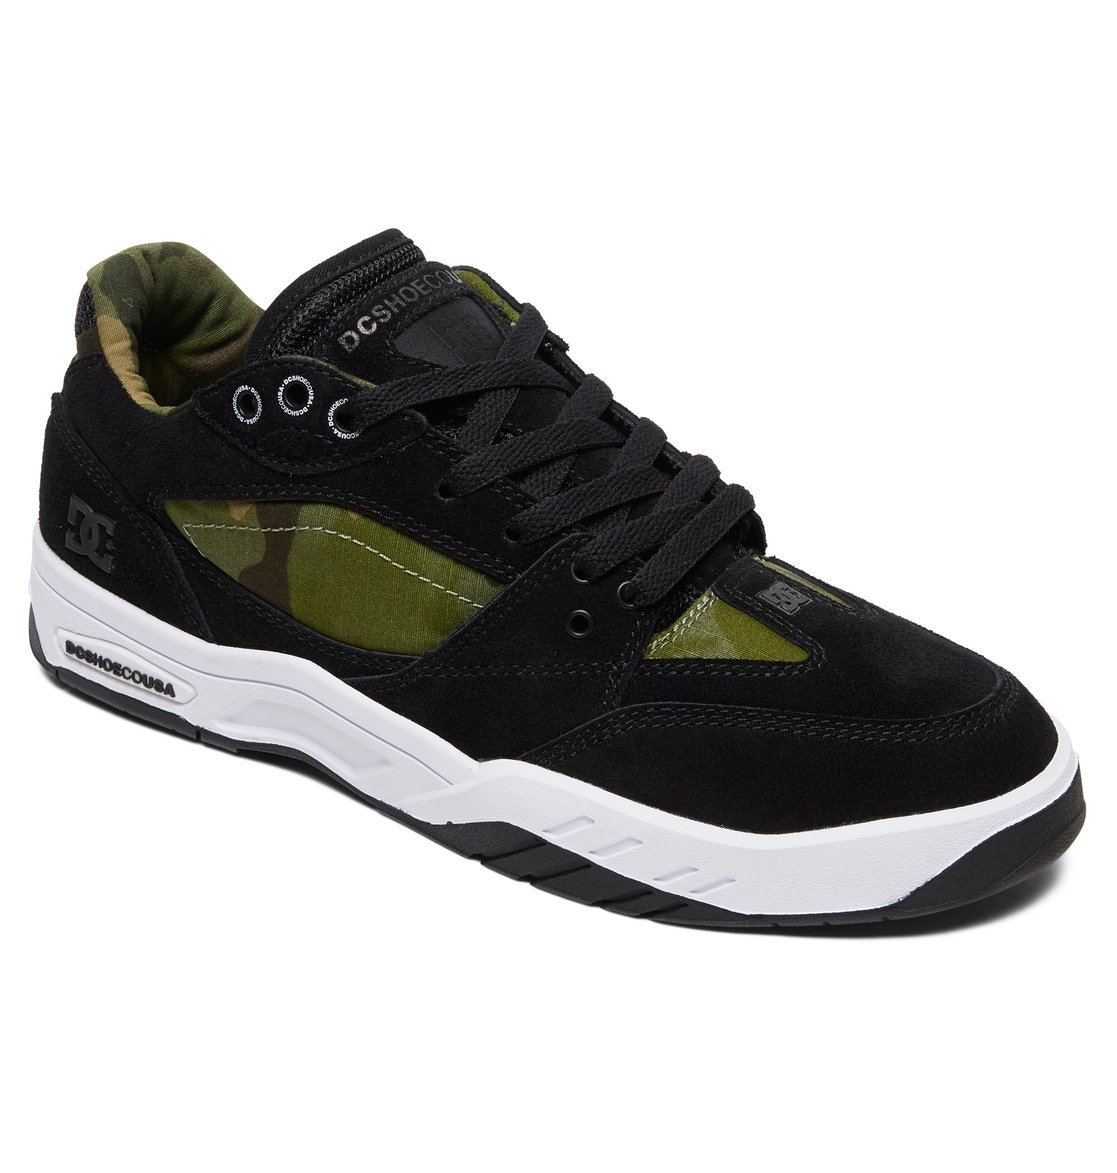 DC Shoes sneakers Maswell SE online kopen op otto.nl